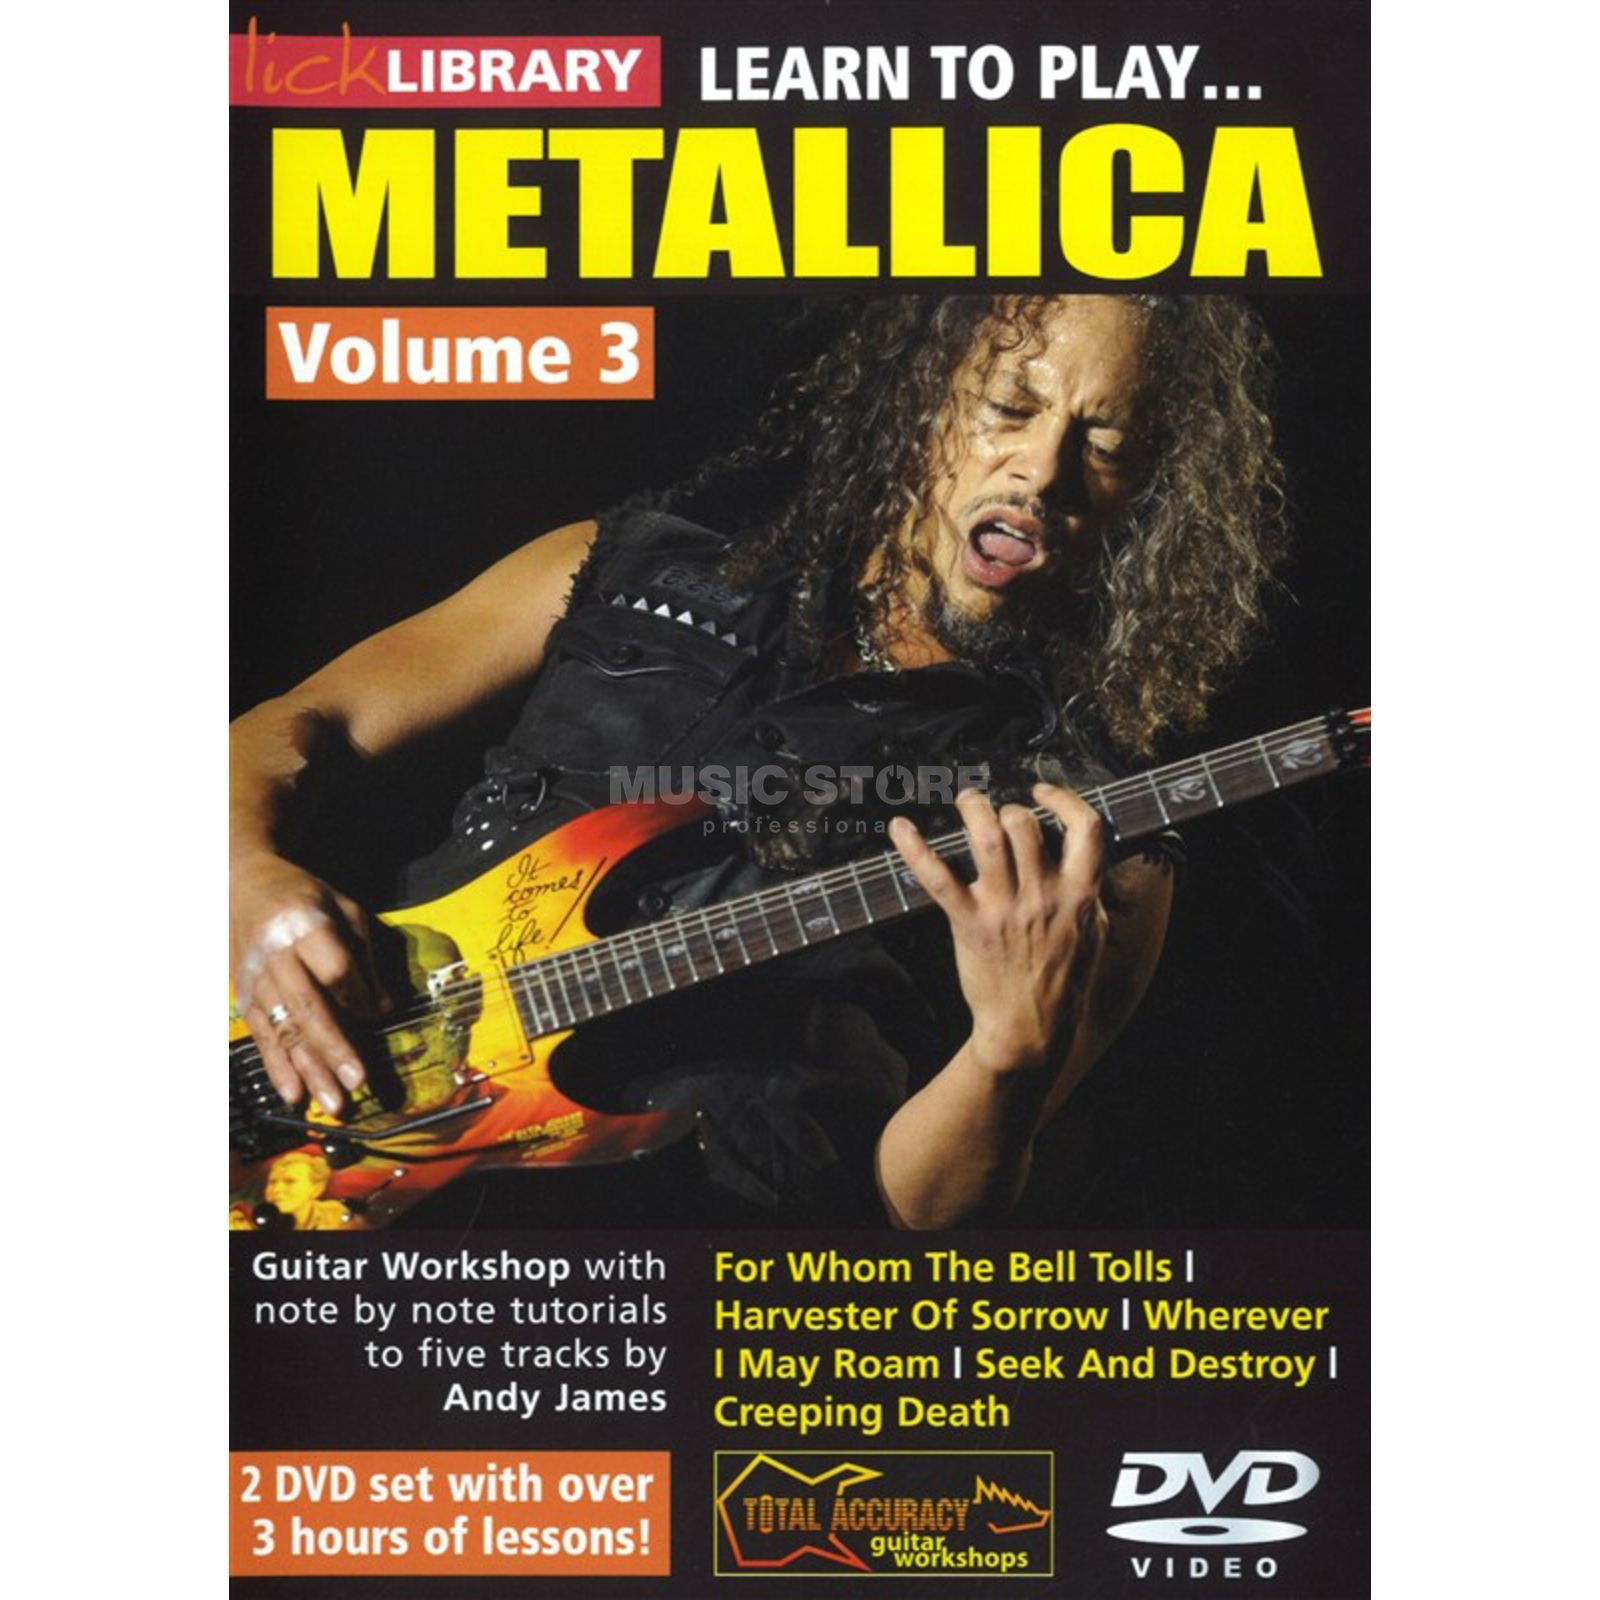 Roadrock International Lick Library: Learn To Play Metallica 3 DVD Produktbillede